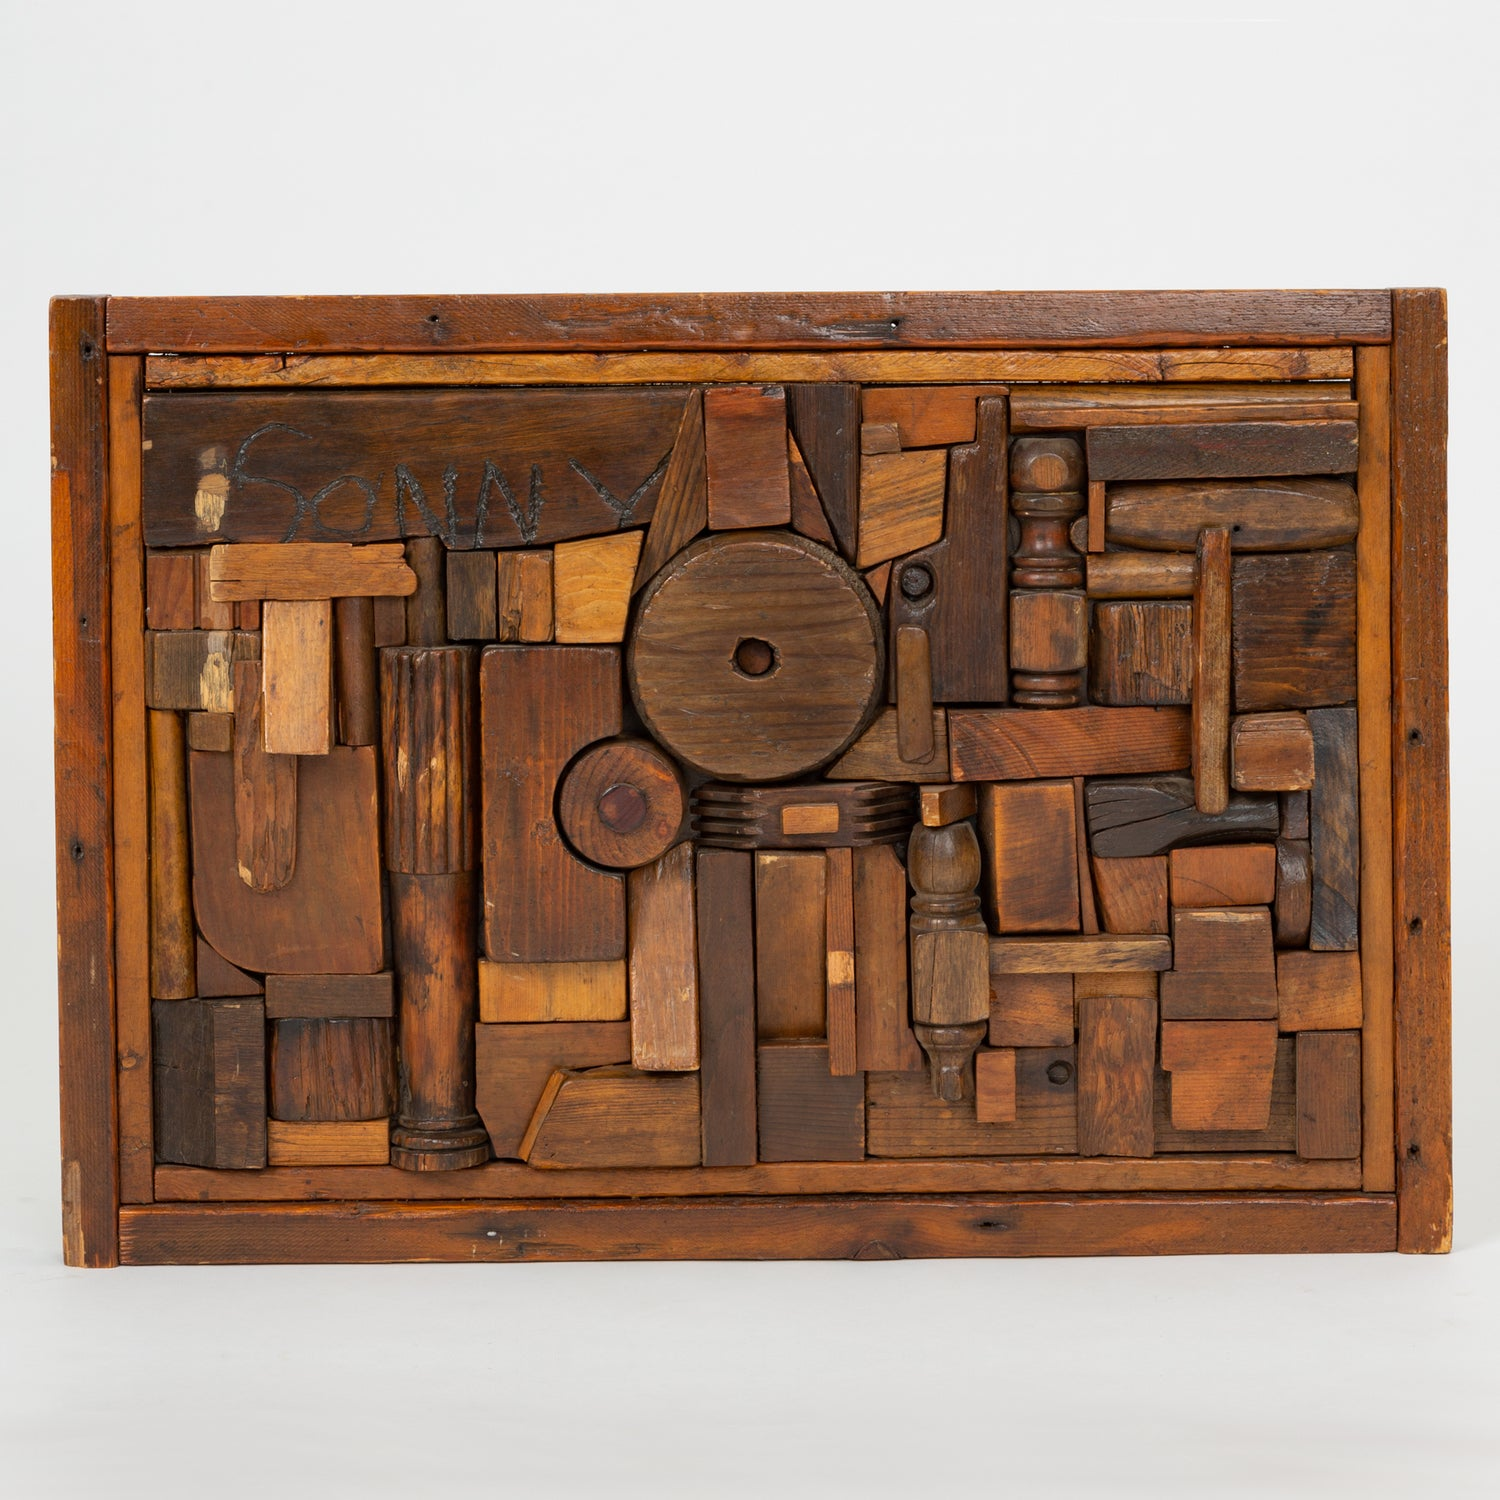 "Woodblock Assemblage ""Sonny"" by Francis Schanz"